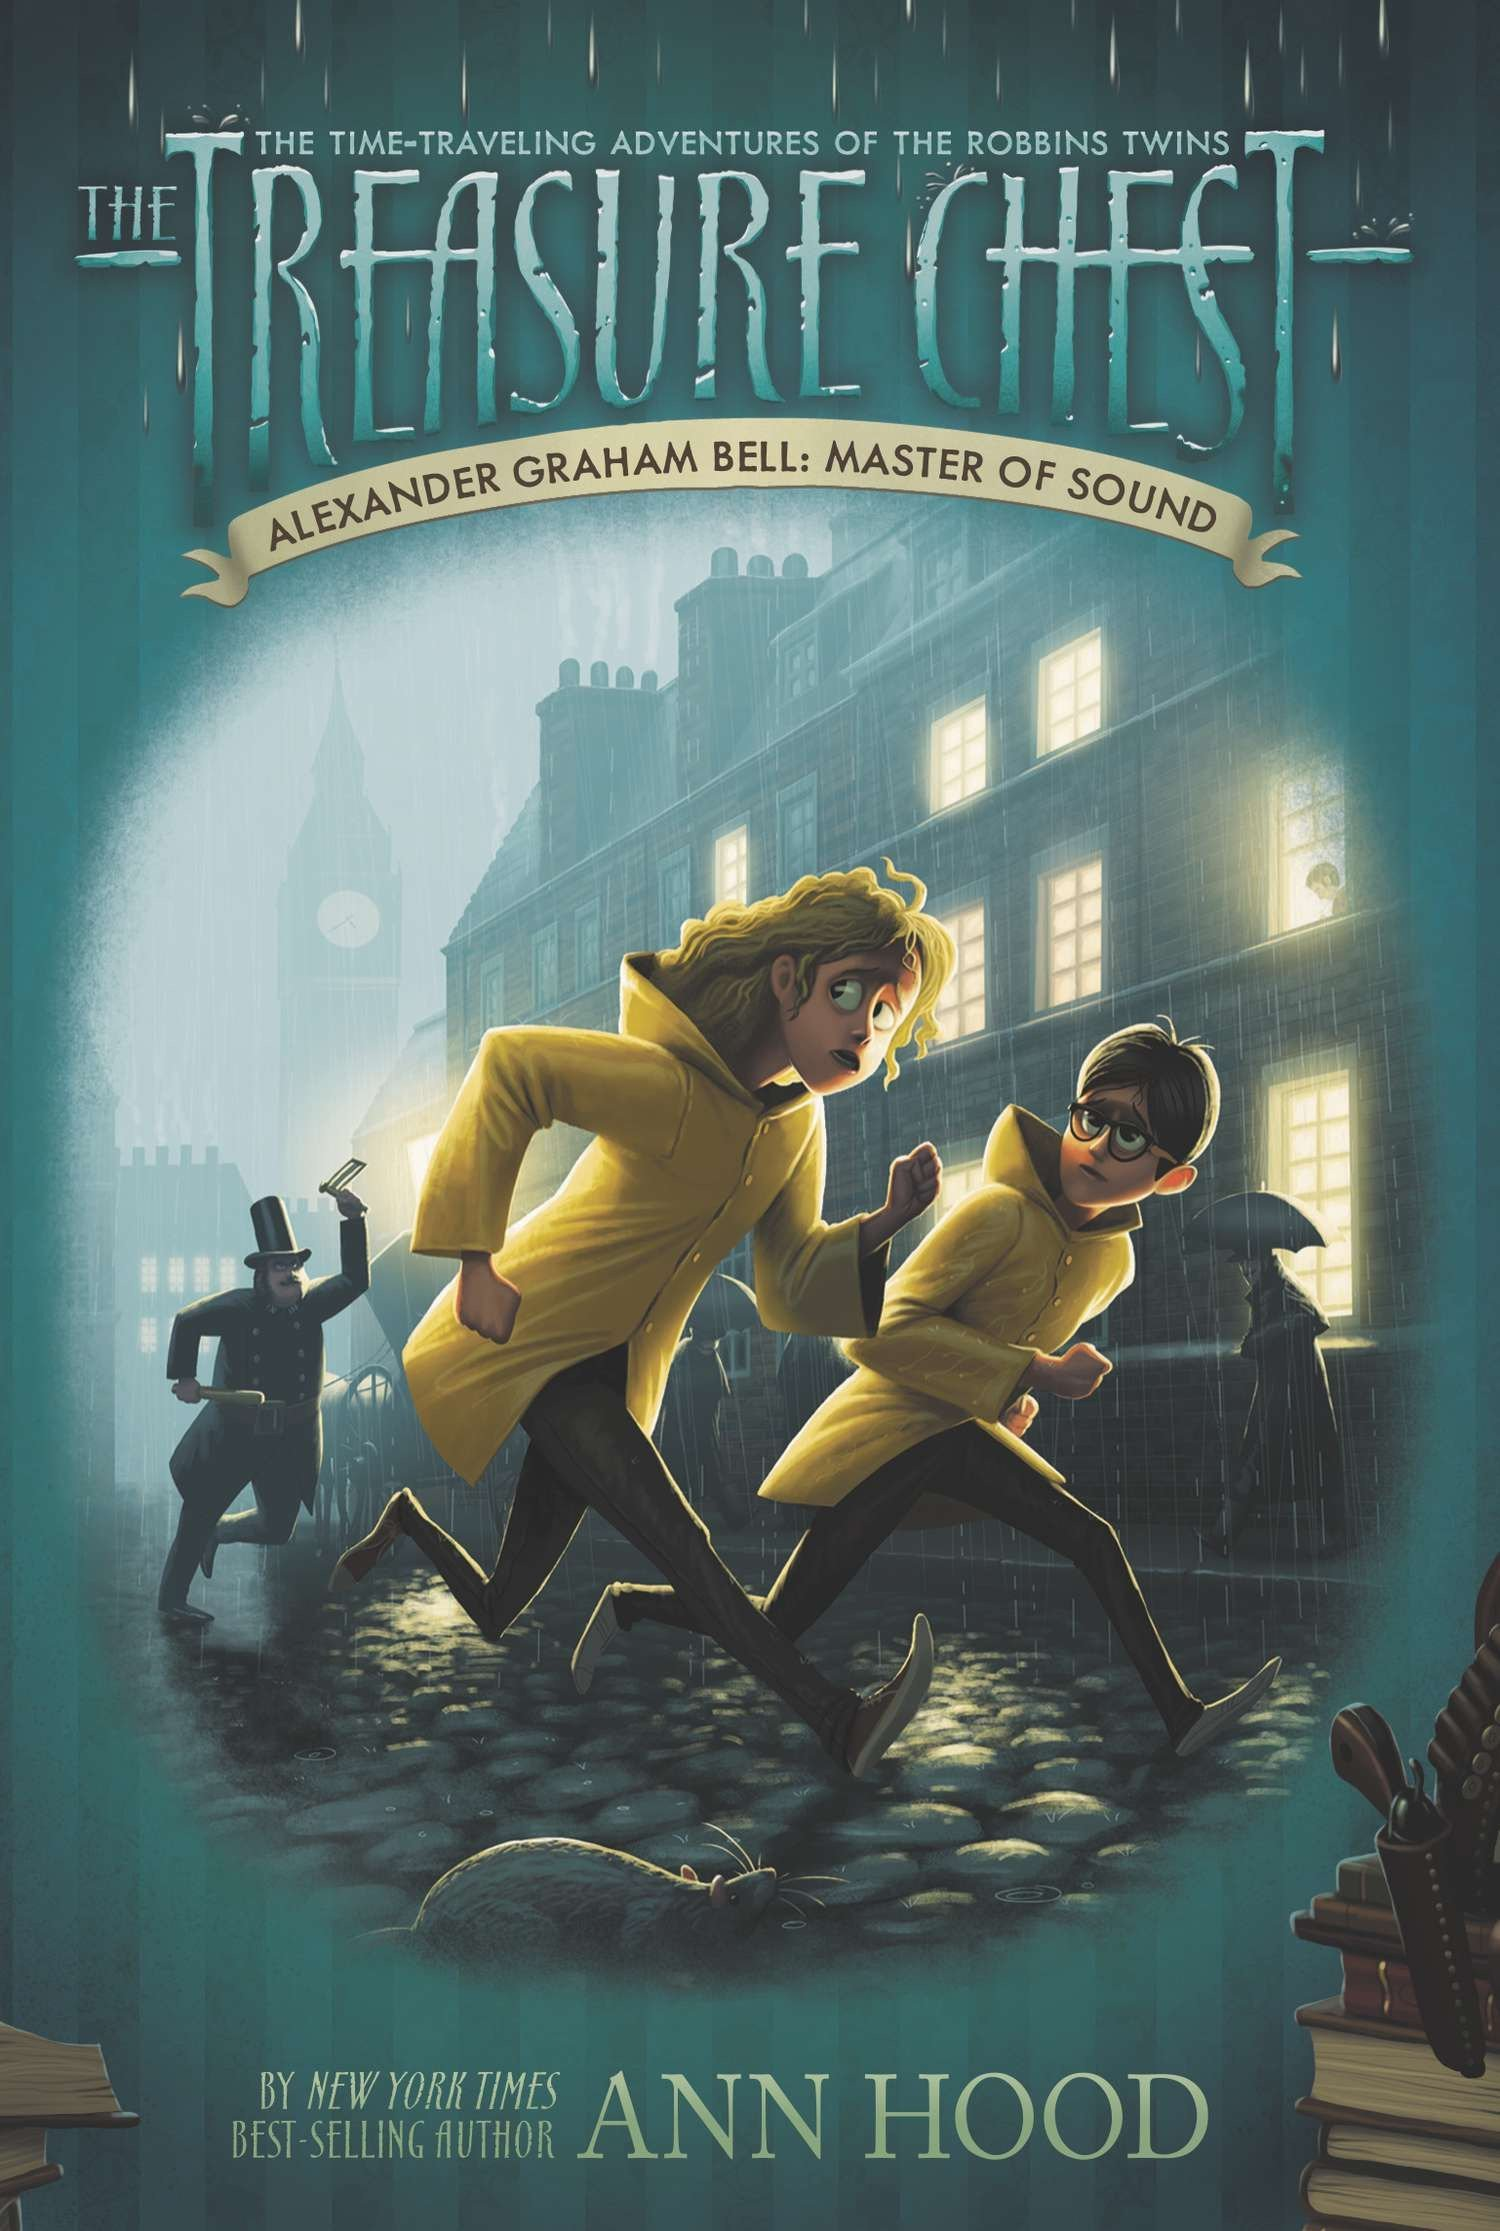 Download Alexander Graham Bell #7: Master of Sound (The Treasure Chest) pdf